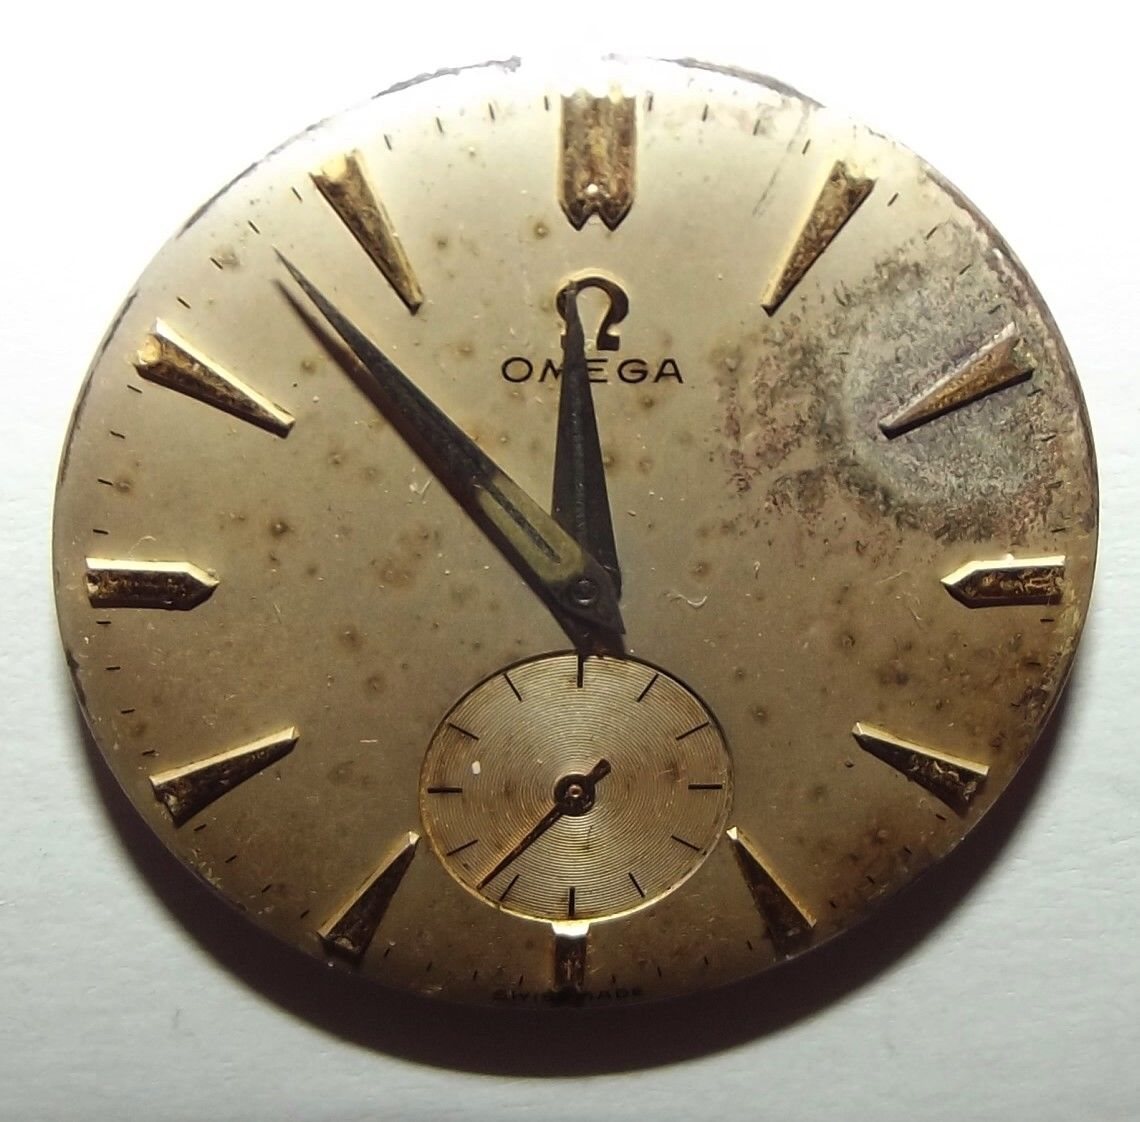 Watch wrist parts -  Vintage Omega 17 Jewels Swiss Made Wrist Watch Face For Parts